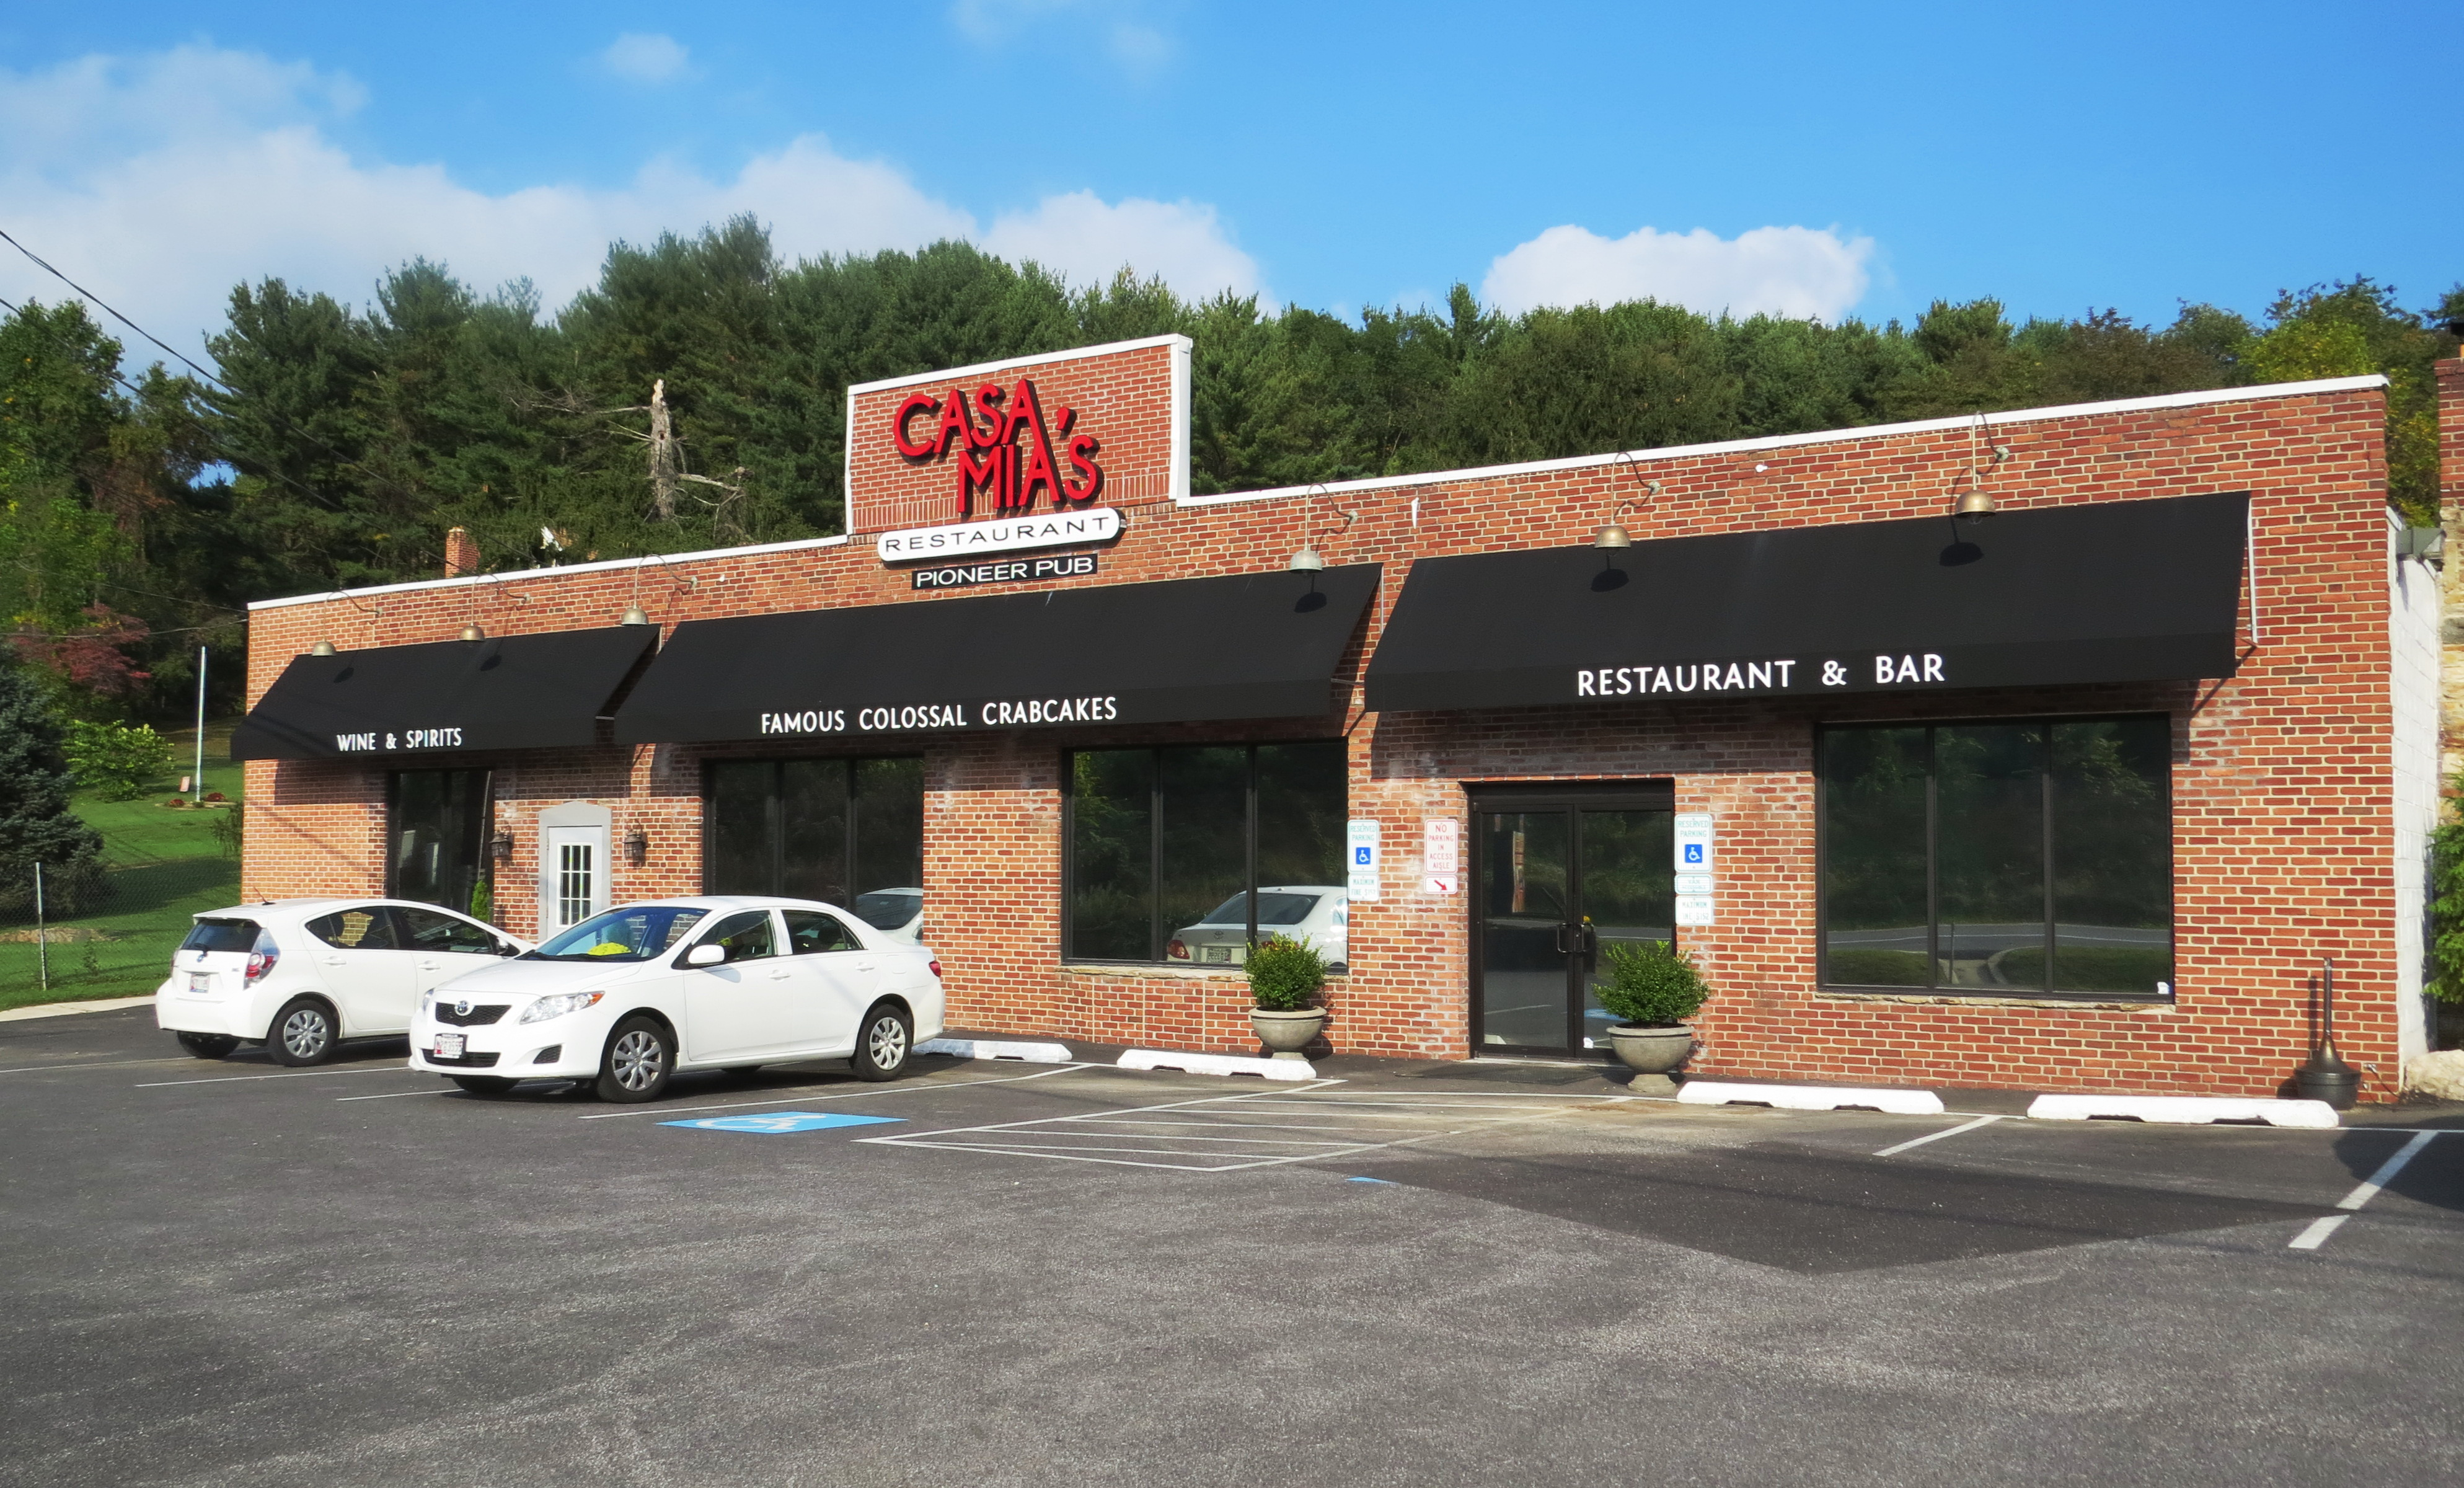 Casa Mias Restaurant storefront awnings     Call A. Hoffman Awning in Baltimore     410-685-5687